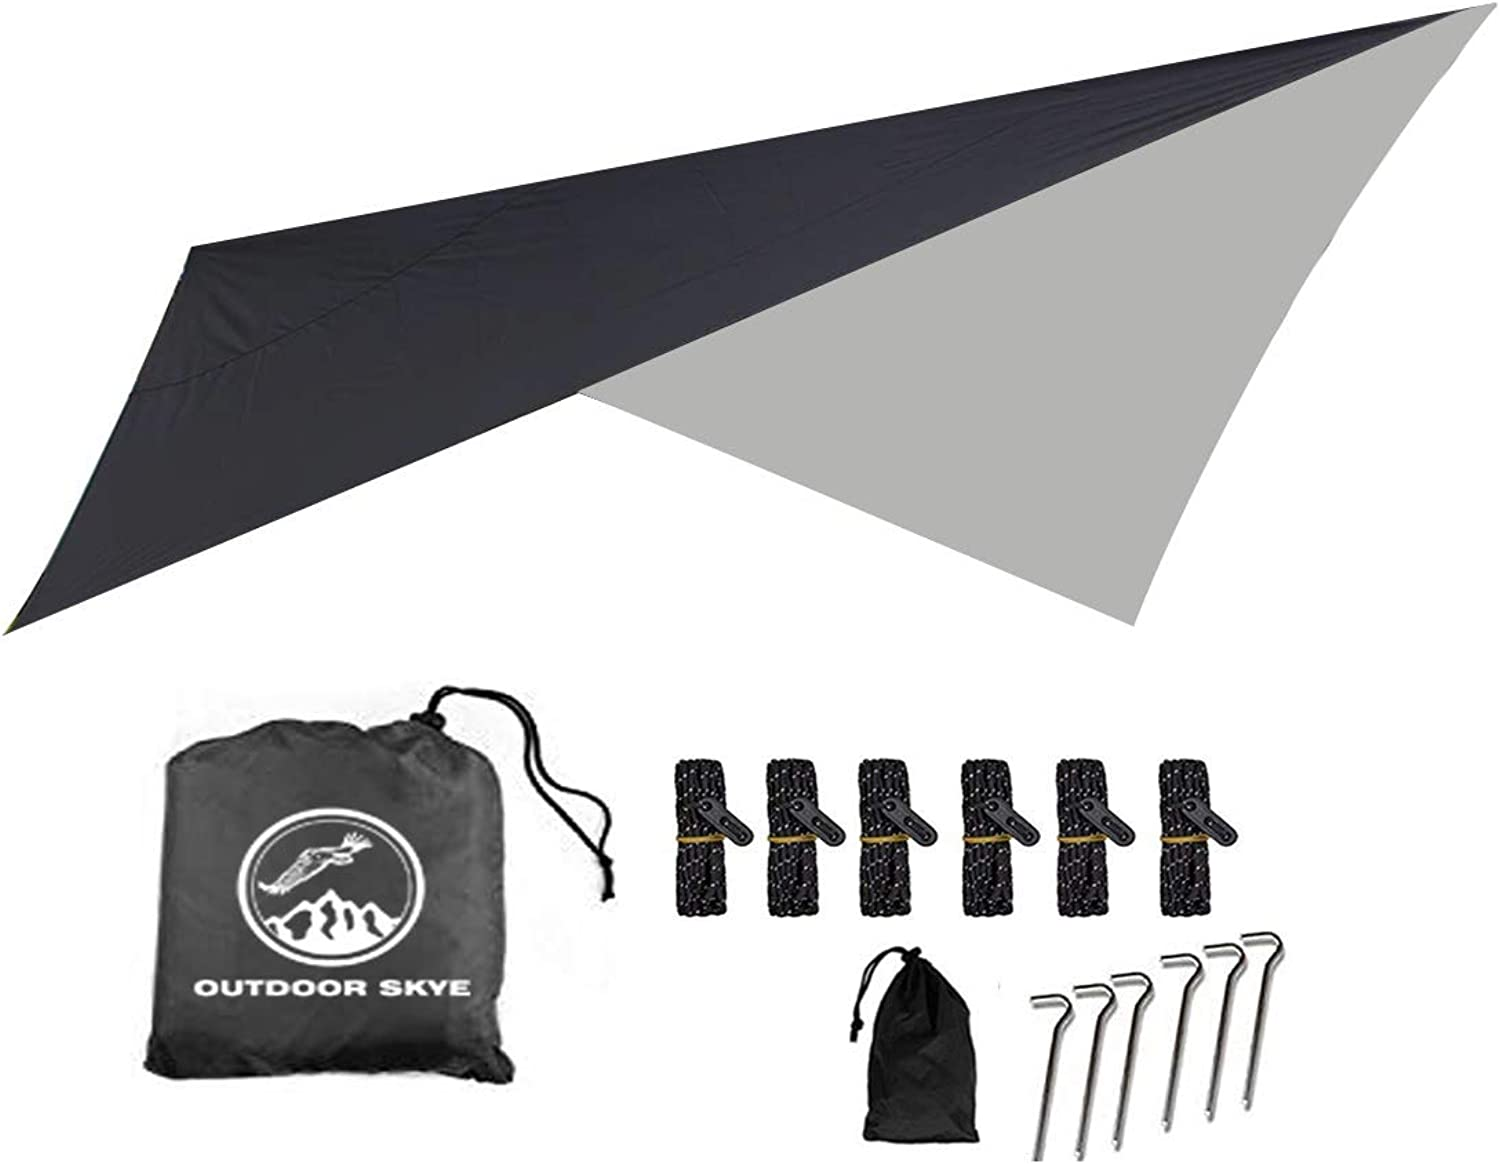 OUTDOOR SKYE 10'x10' Rain Fly Hammock Tent Tarp for Extreme Waterproof Predection  Large Canopy is Portable and Provides Ideal Shelter for Your Camping Hammock Or Tent (Black)